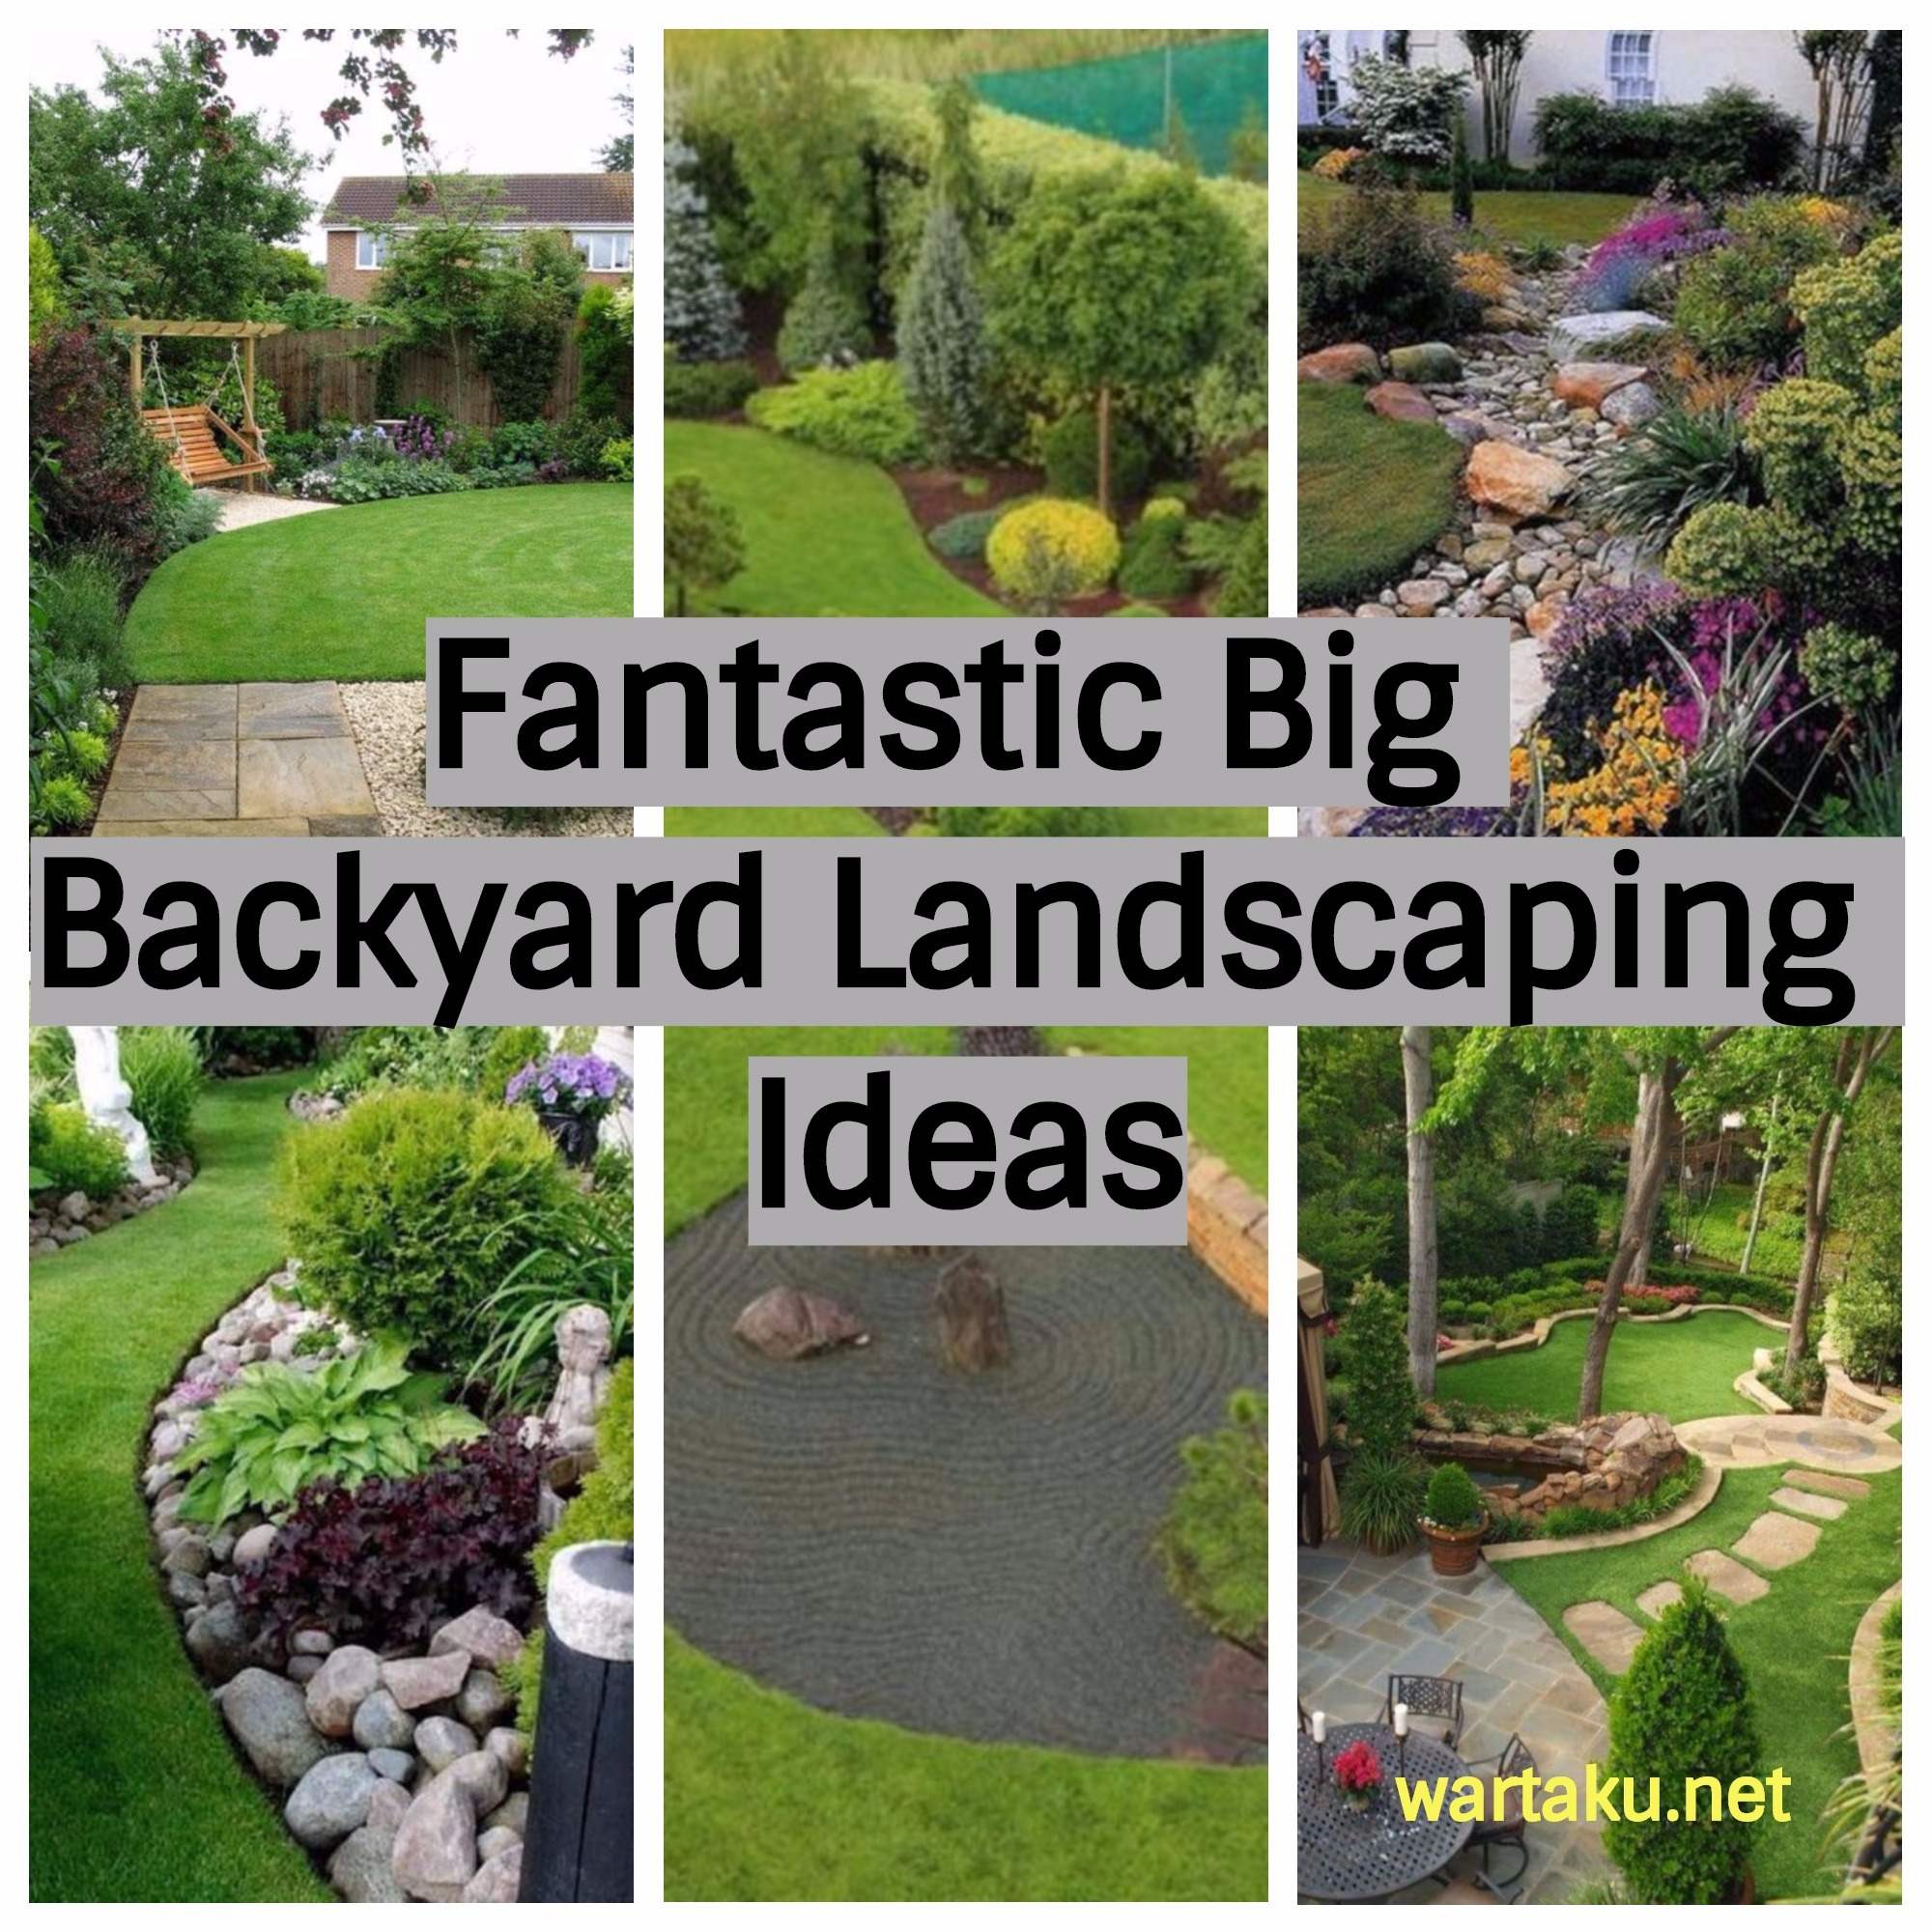 9 Wonderful Large Backyard Landscape Ideas Collection Home inside How To Landscape Backyard